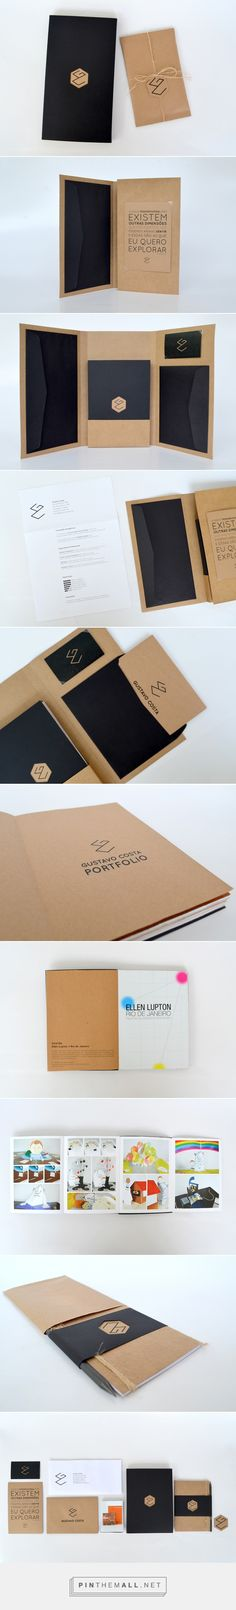 Self Promotion Kit | Gustavo Costa on Behance - created via http://pinthemall.net